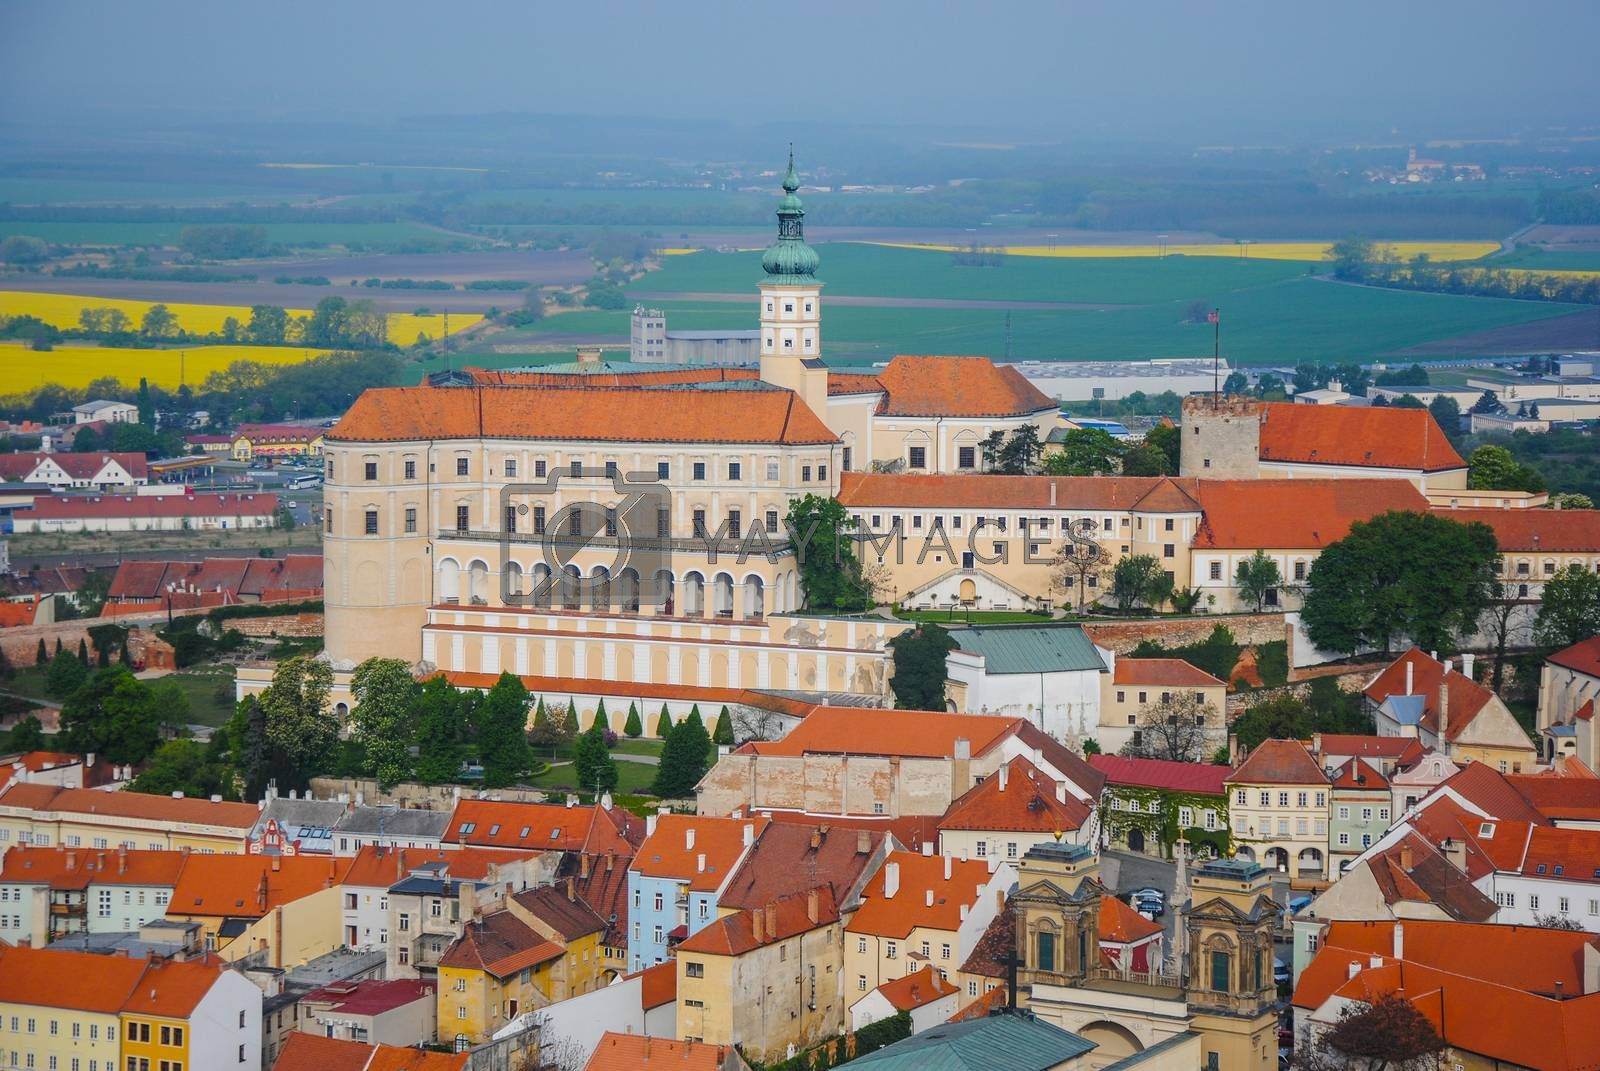 Mikulov castle in typical moravian town by pyty